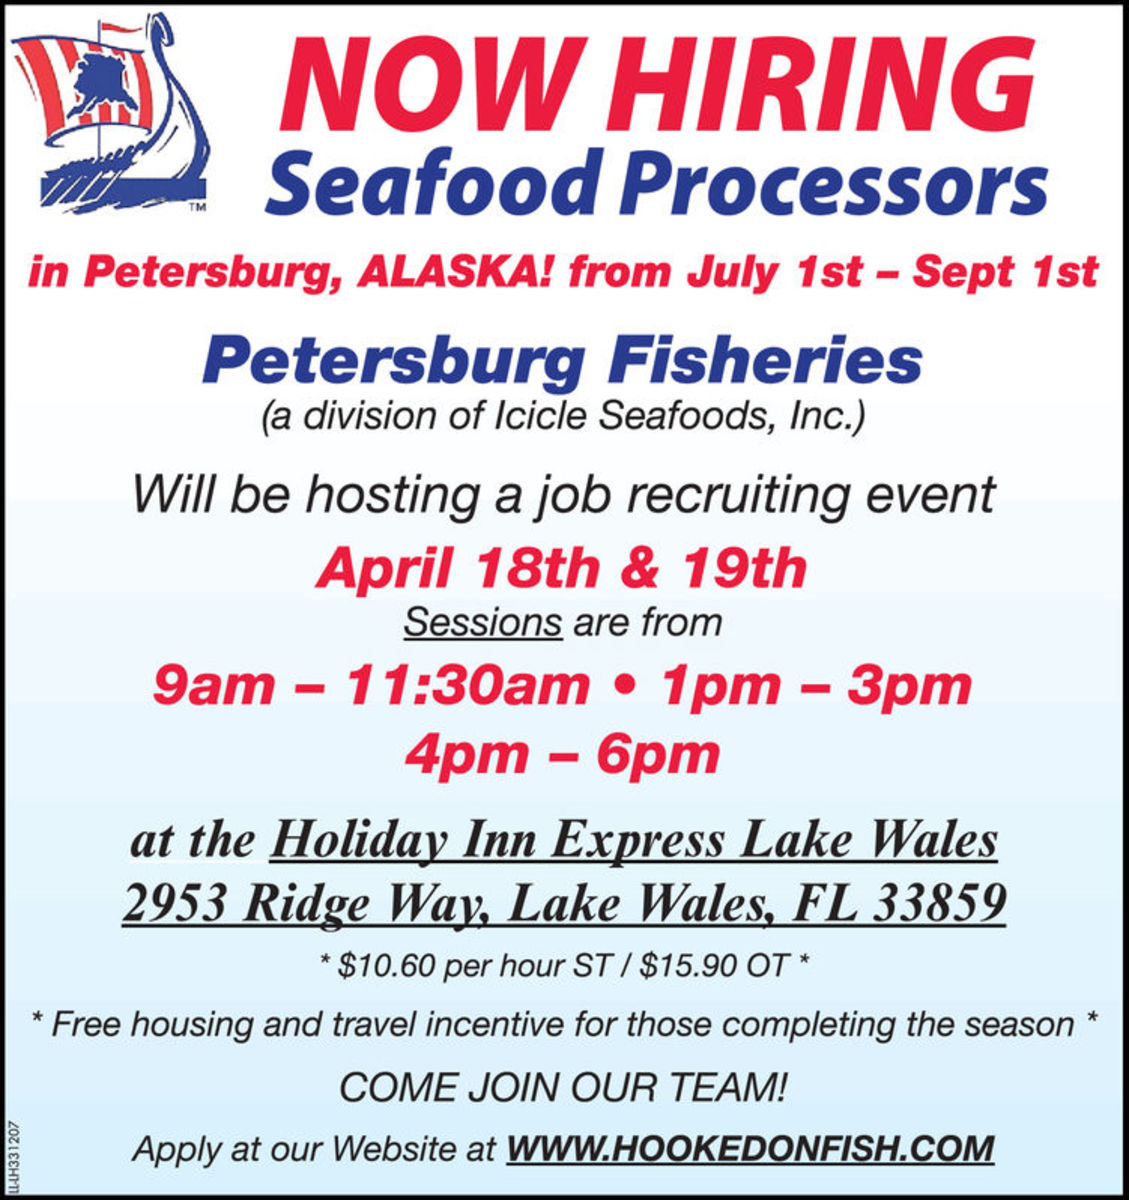 Petersburg Fisheries employment flyer from 2018